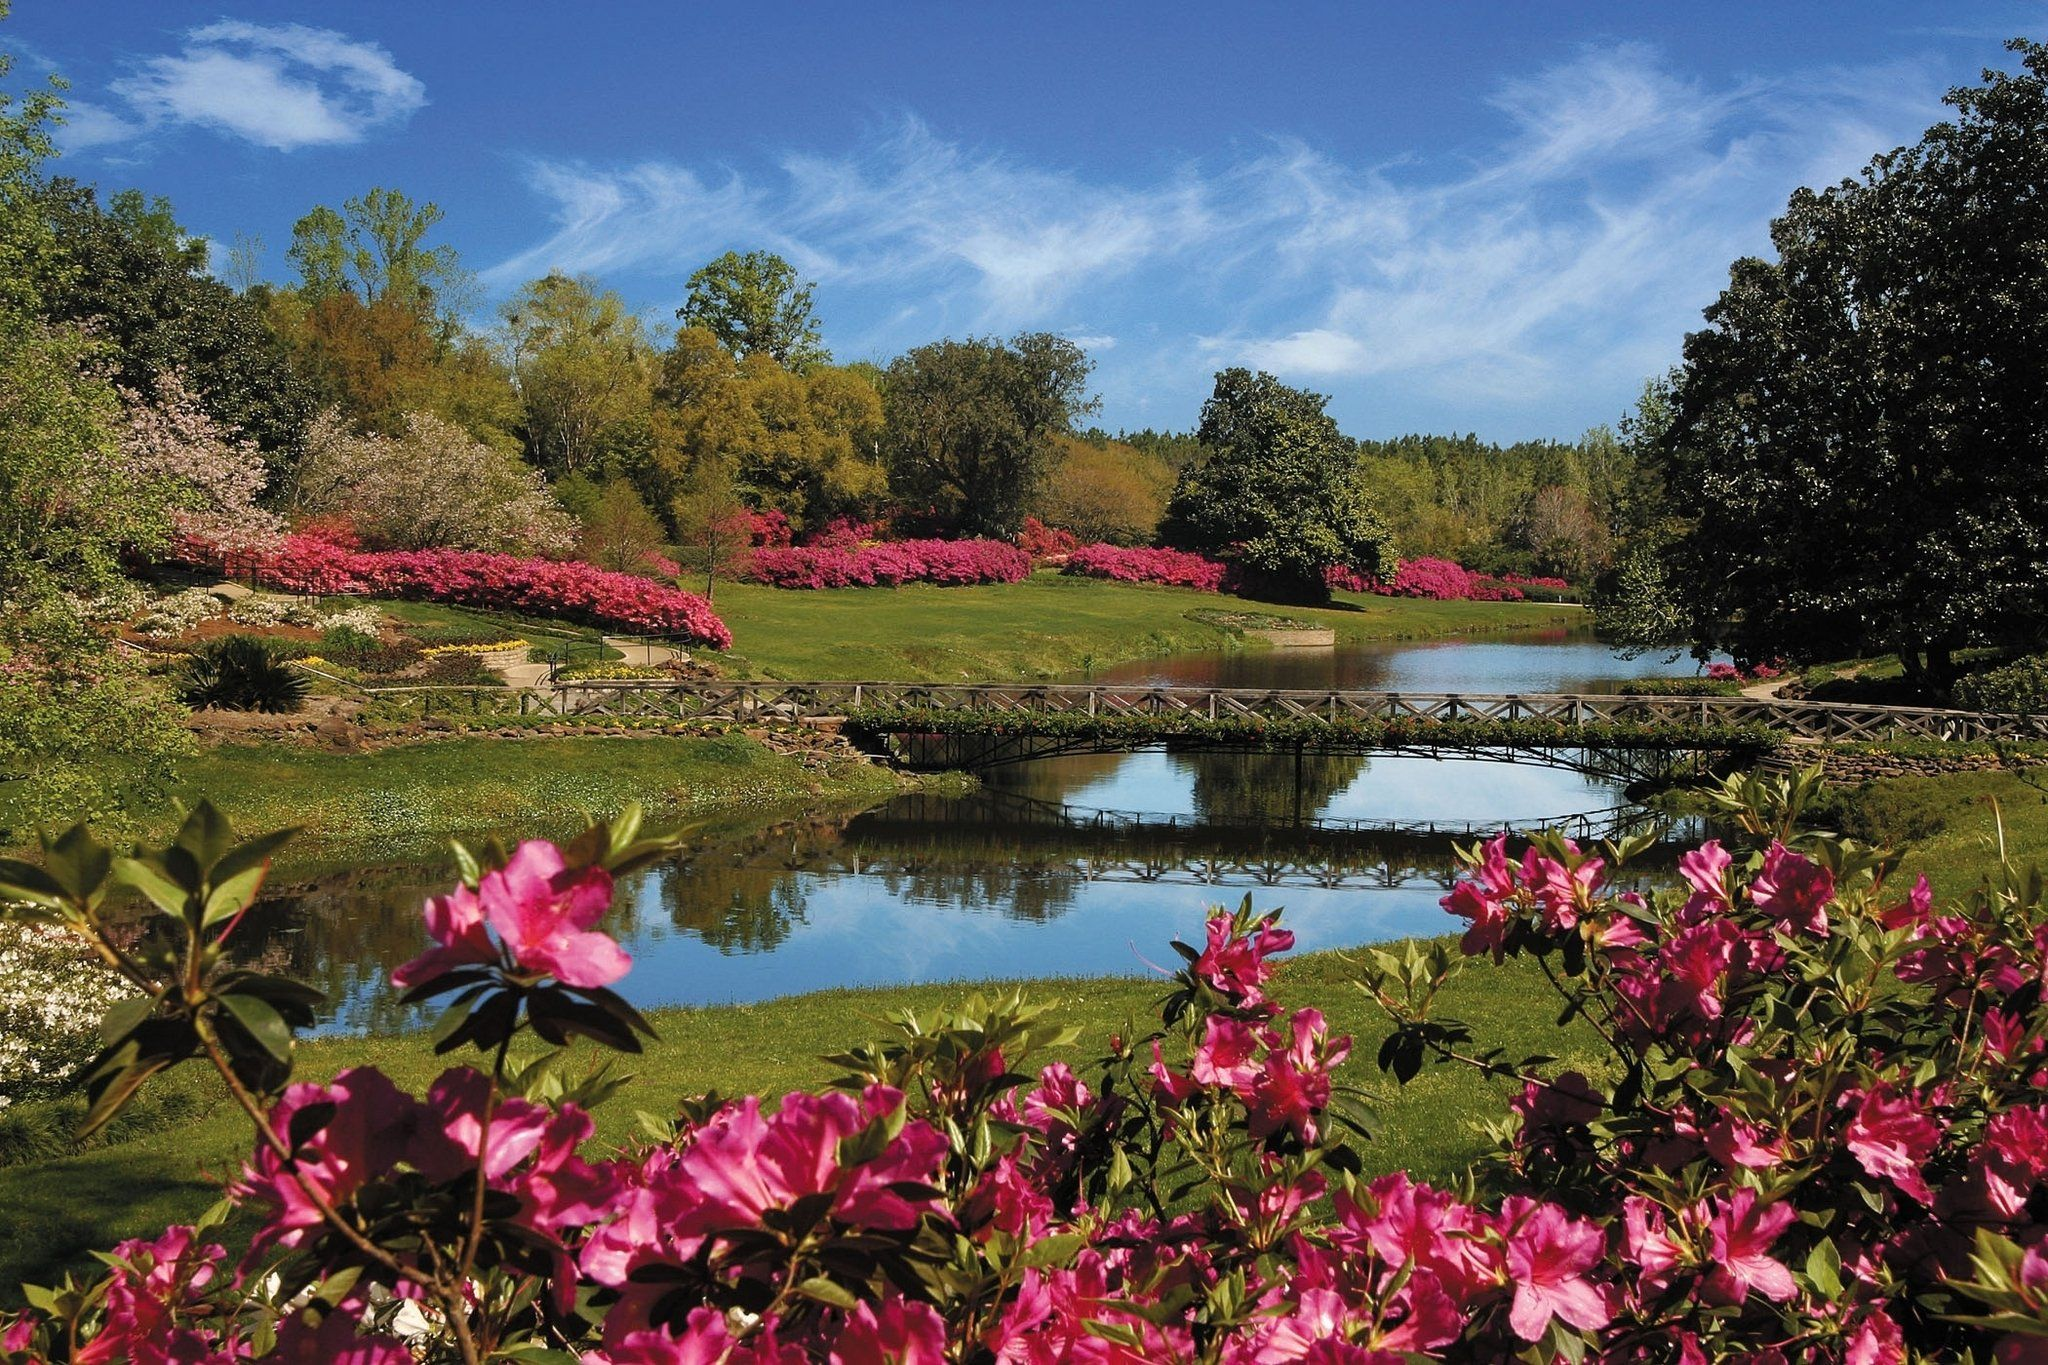 51ec365ecf669f0c75abac795535f96a - Best Gardens To Visit In Spring